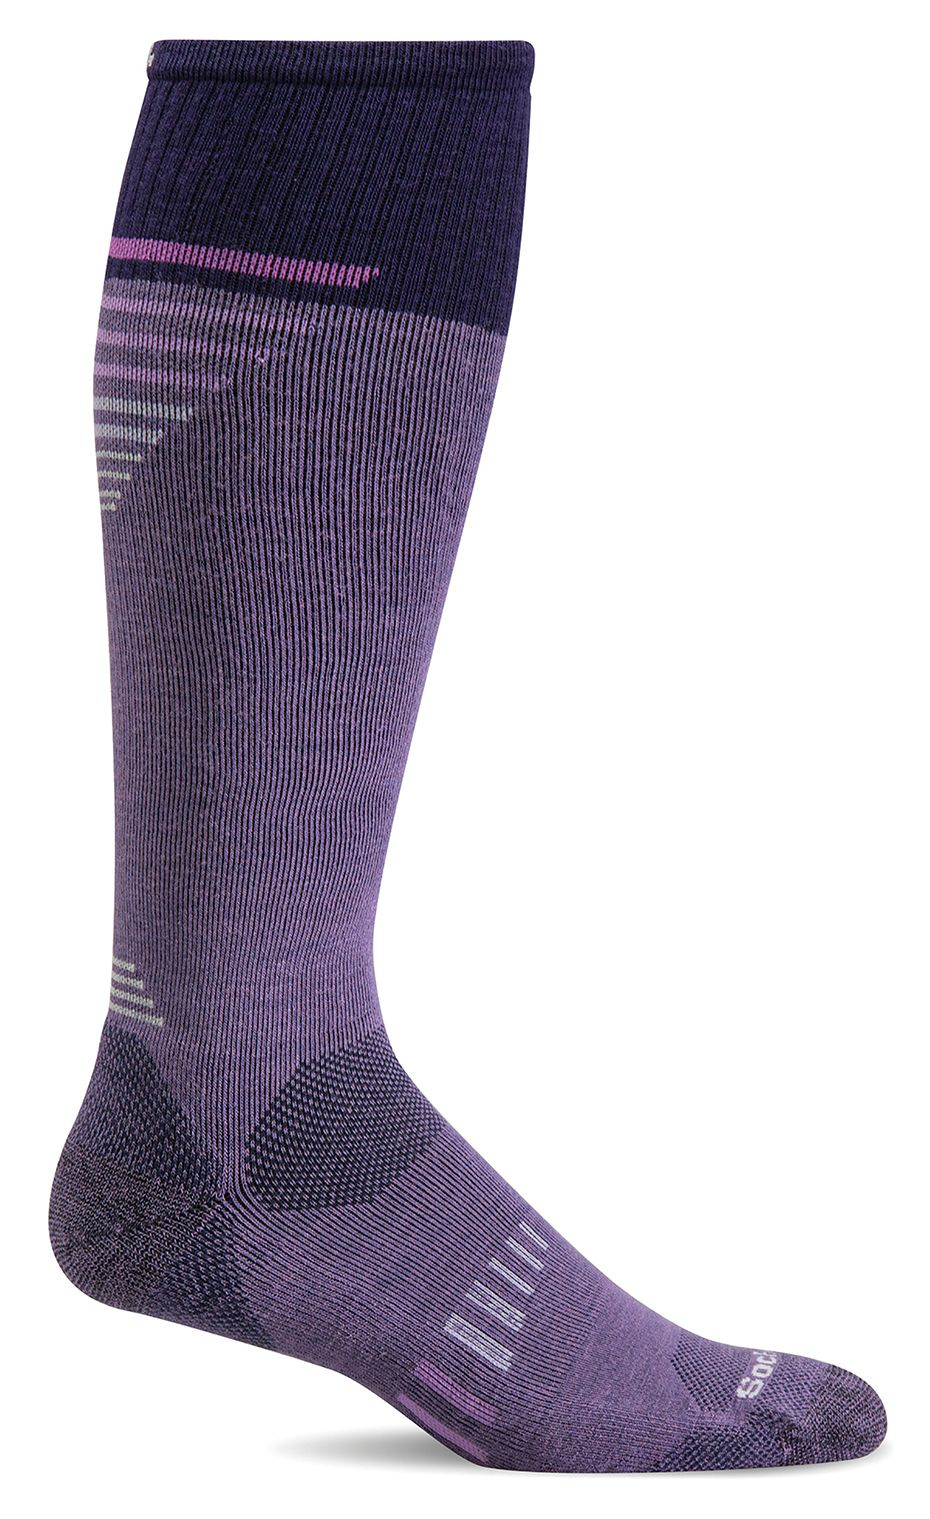 Ascend II Knee-High - Plum Moderate Compression (15-20mmHg)